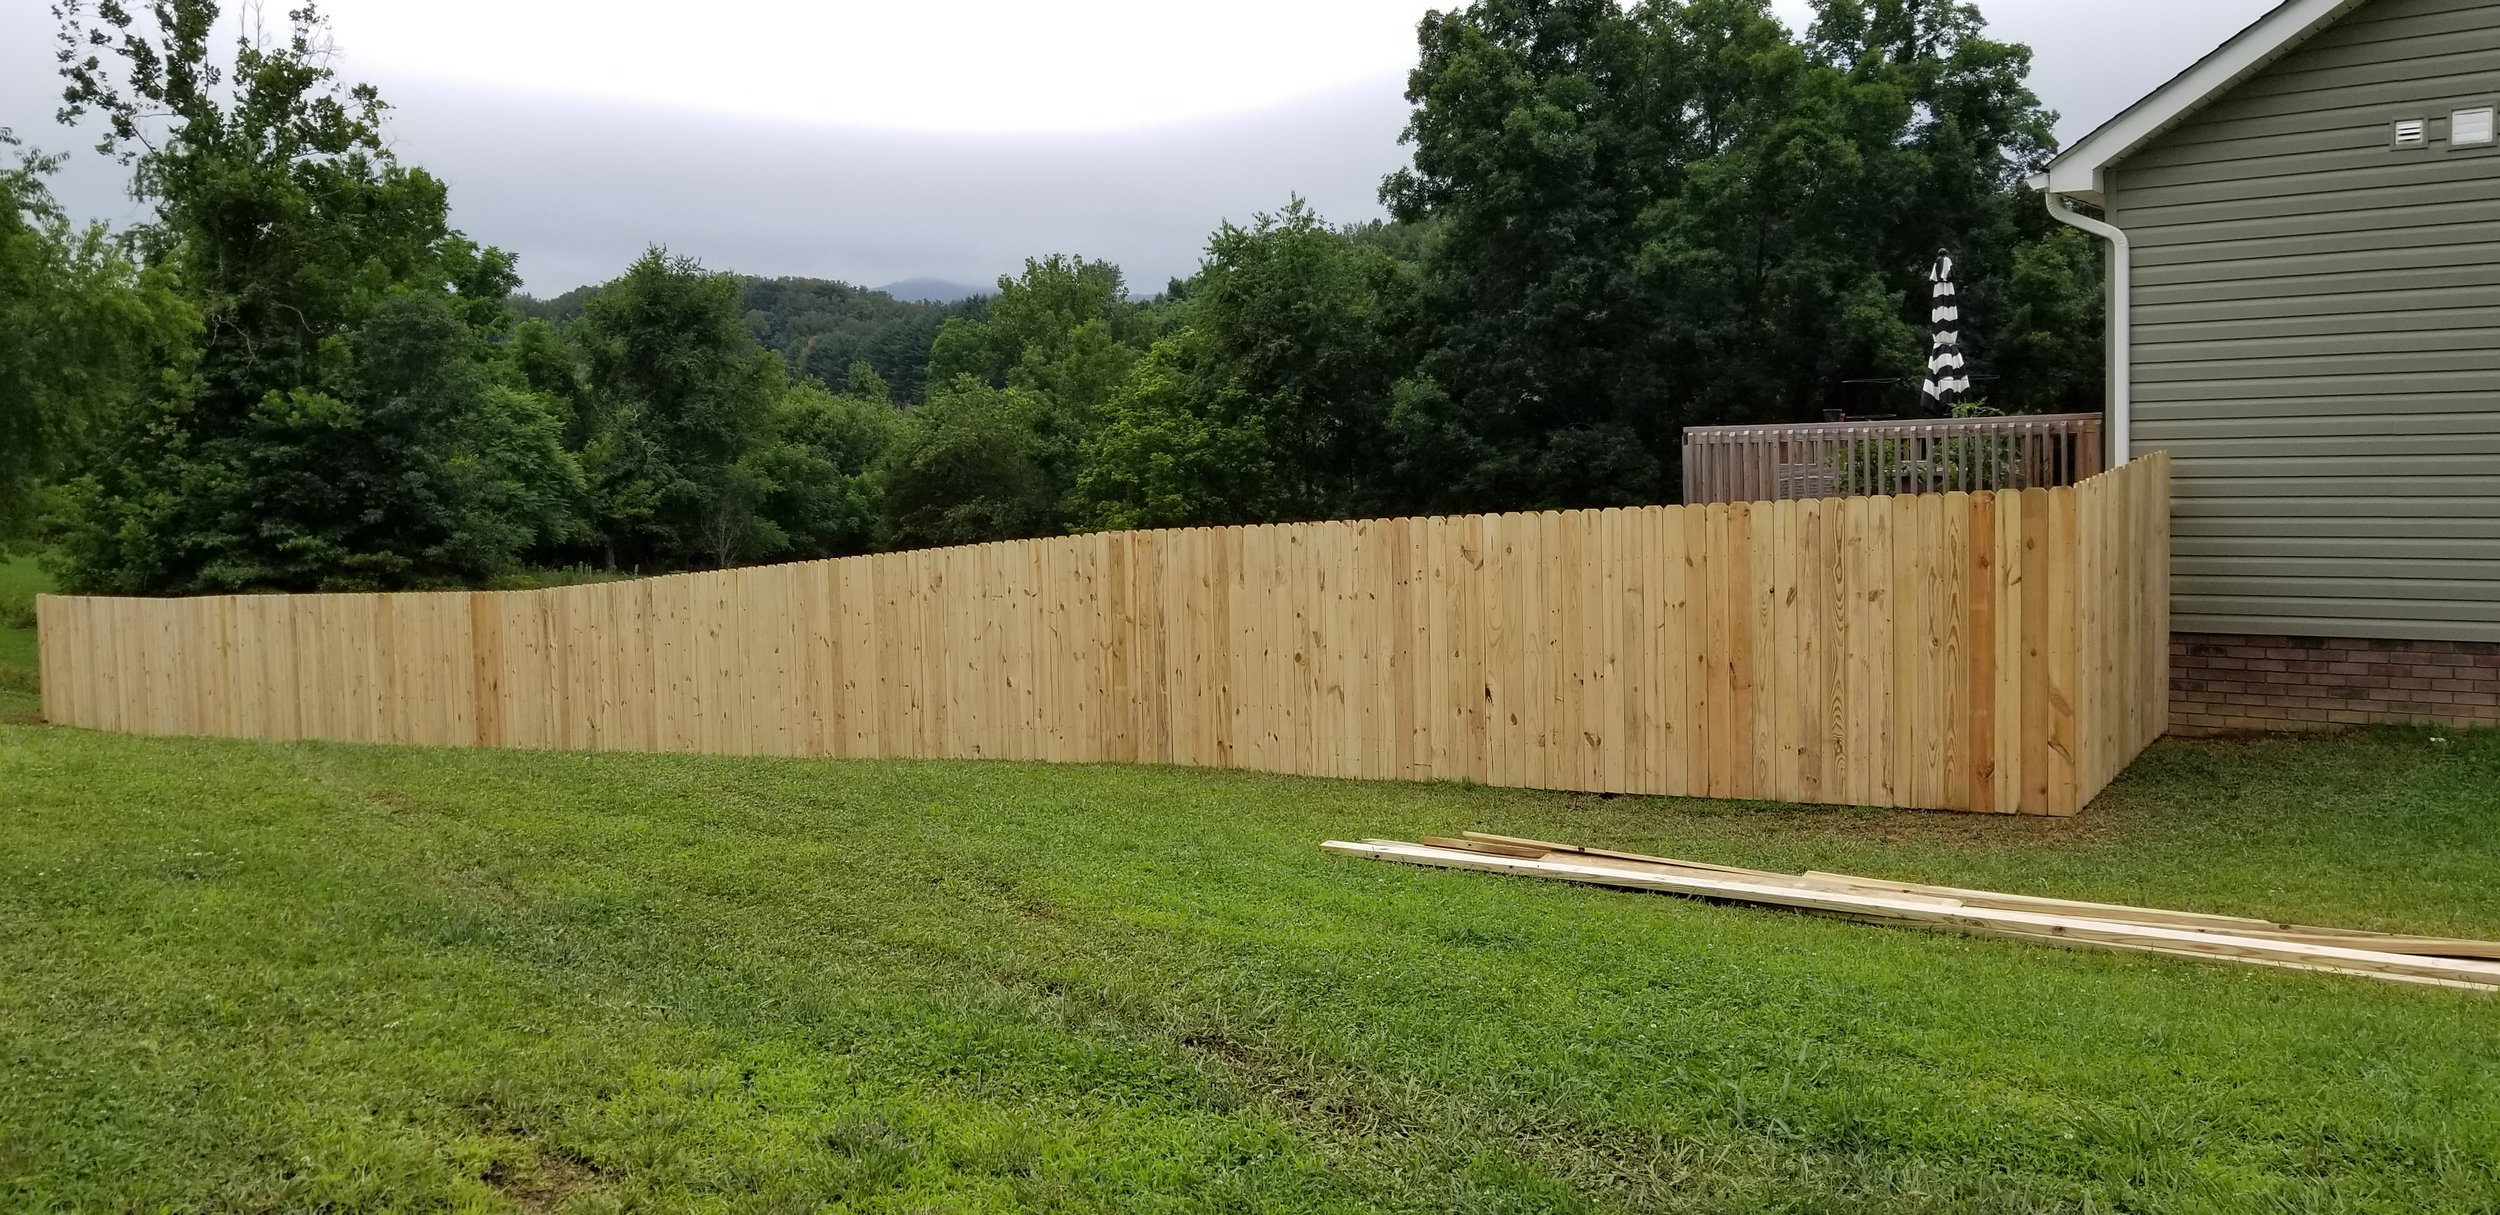 New Pine Privacy Fence (Elizabethton, Tn)